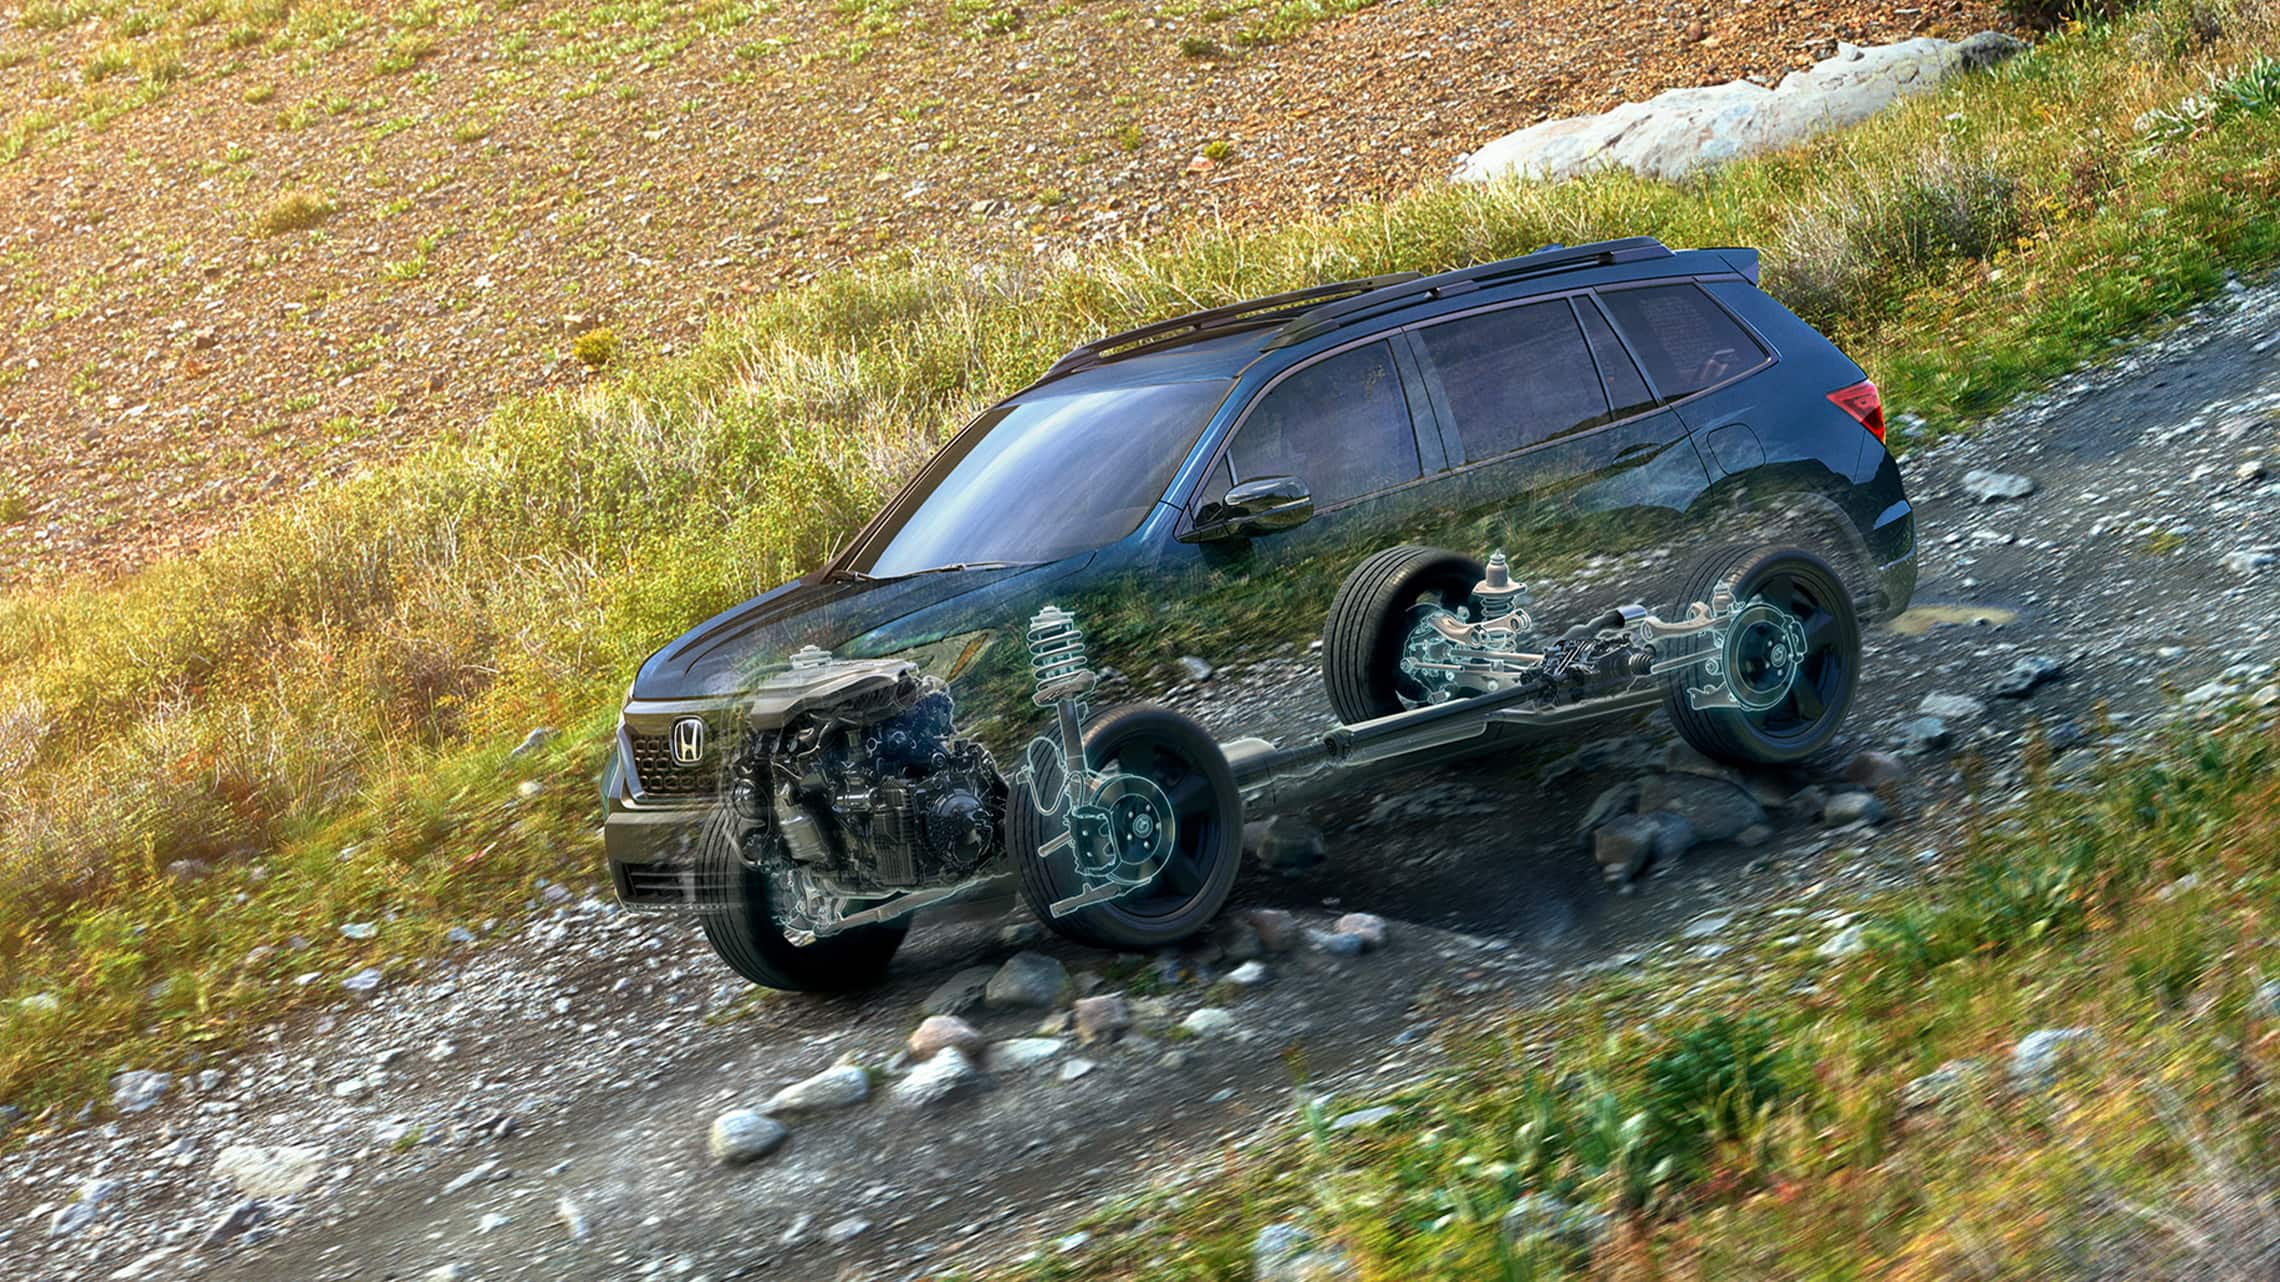 Click to play video of the 2021 Honda Passport driving through rocky terrain, with cutaway graphics displaying 4-wheel independent suspension in action.